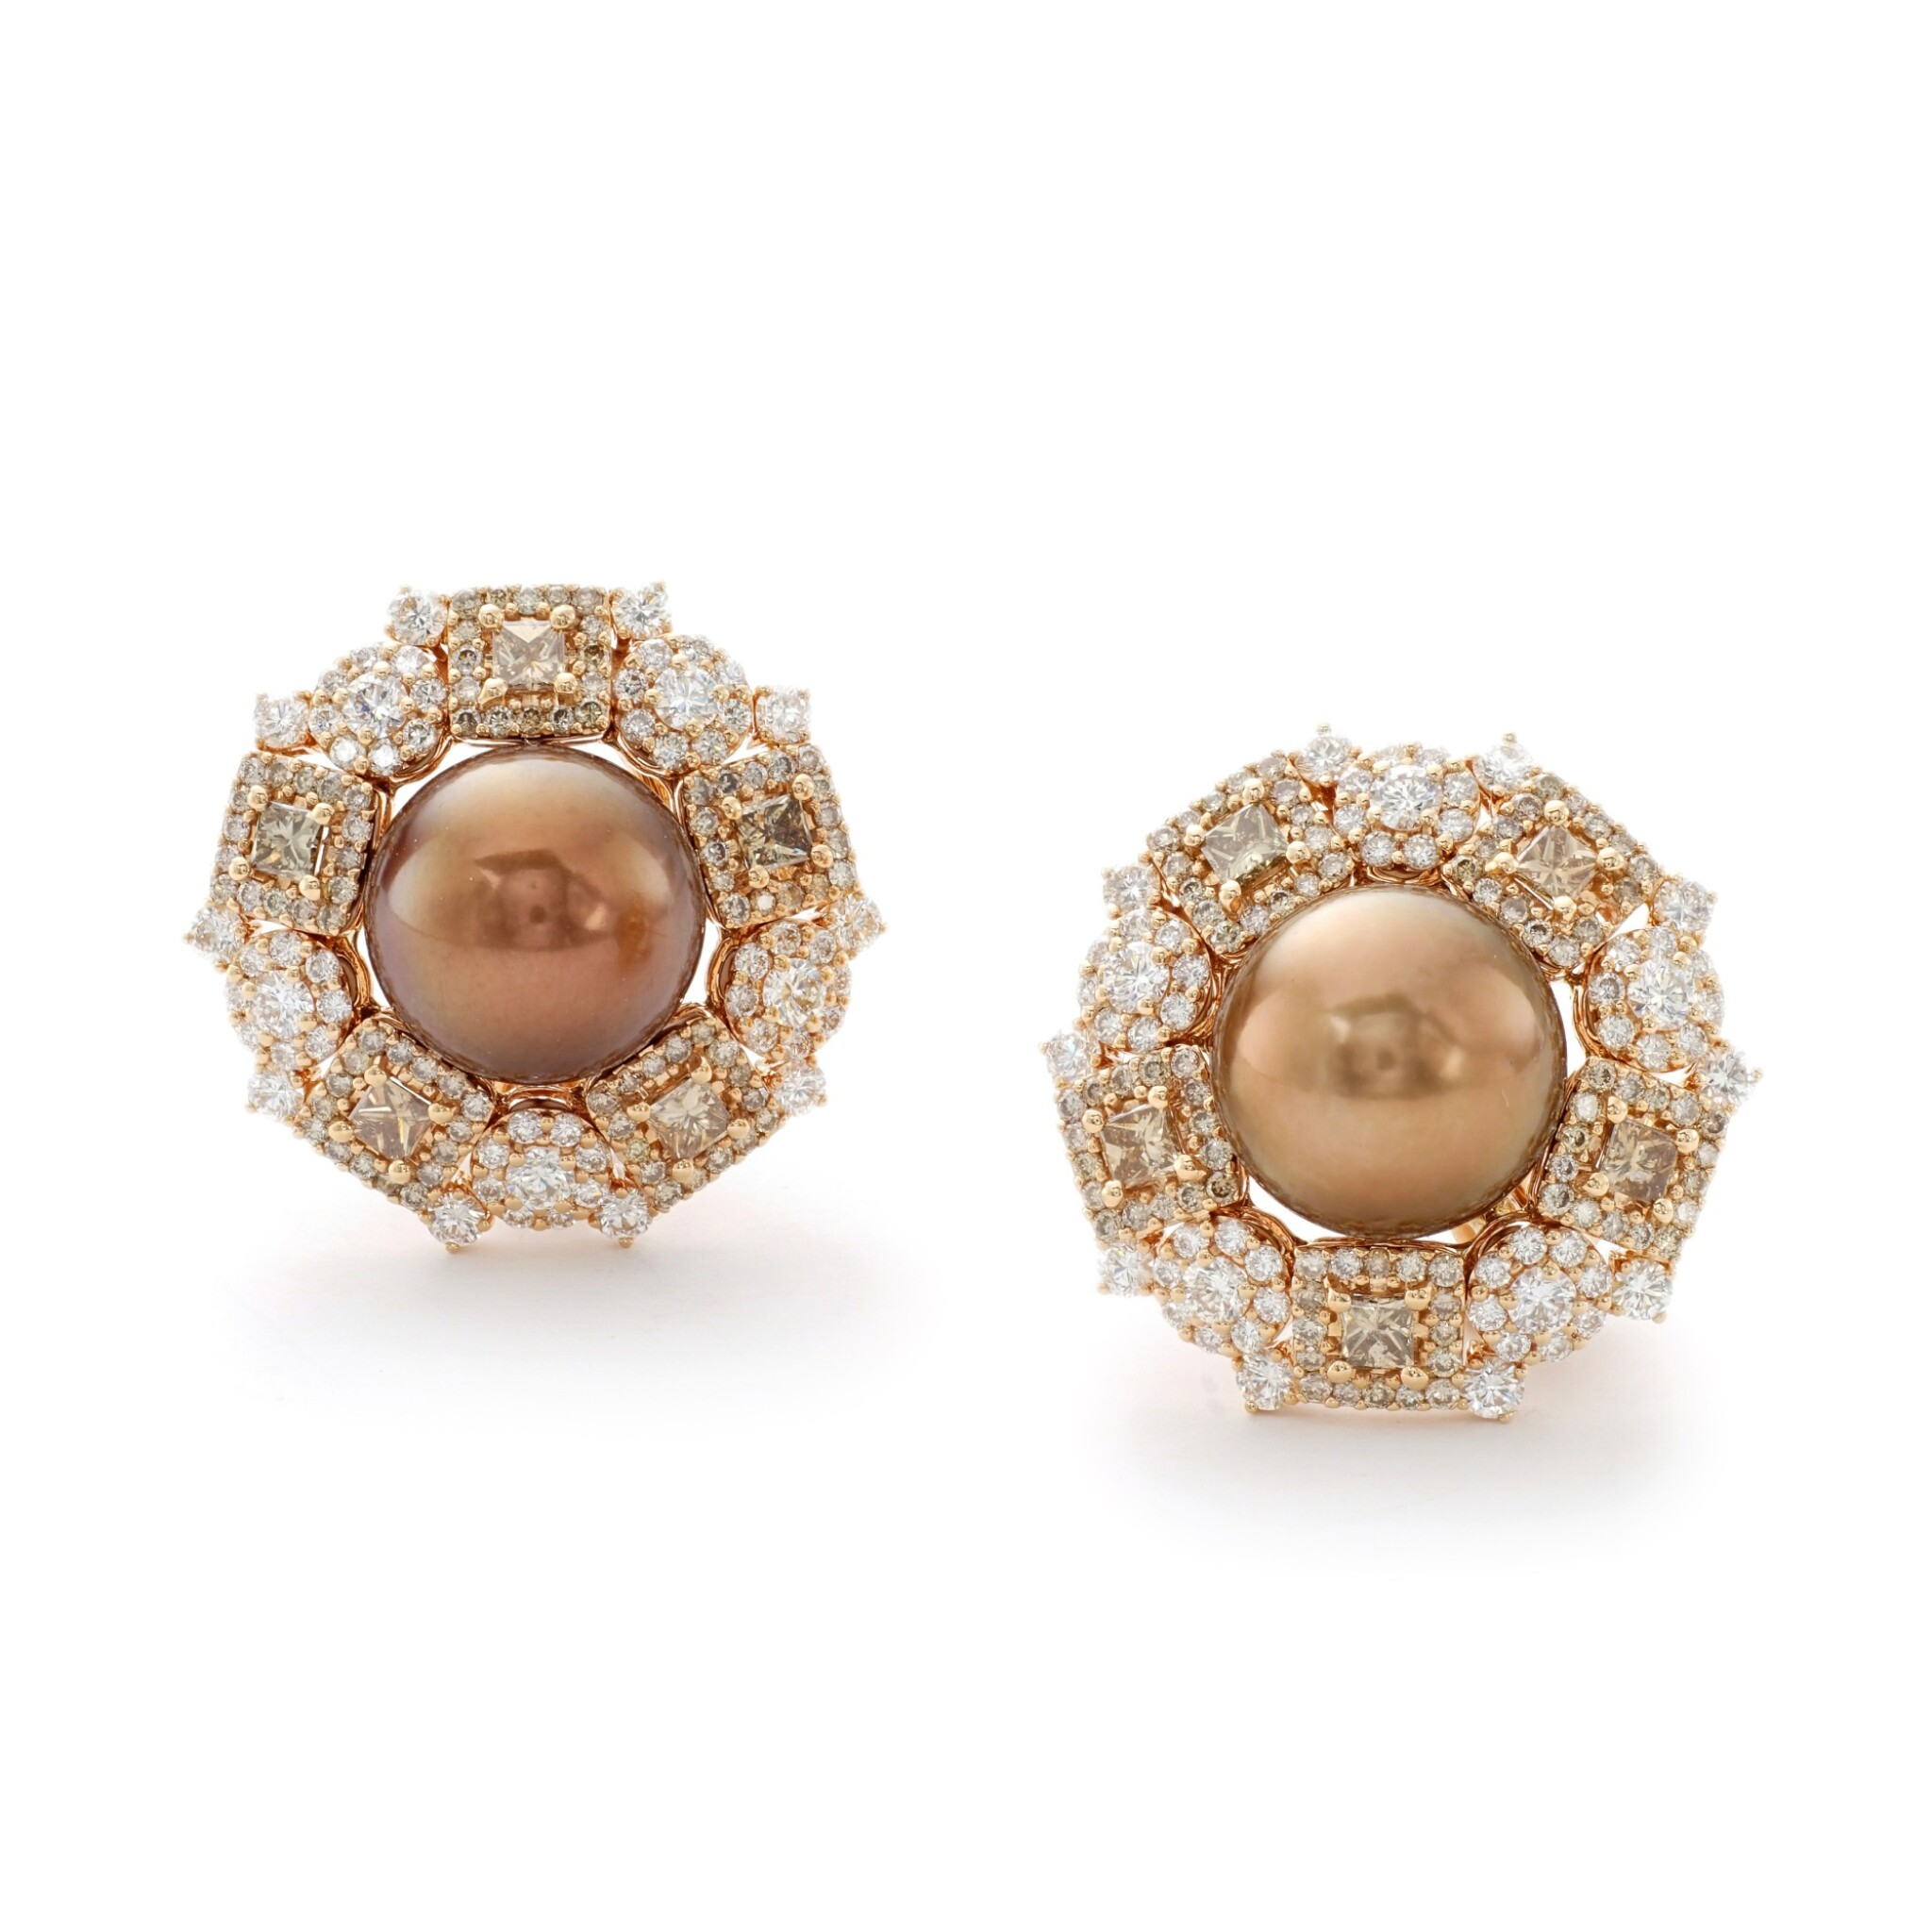 View full screen - View 1 of Lot 4. MICHELE DELLA VALLE   PAIR OF CULTURED PEARL AND DIAMOND EARRINGS.